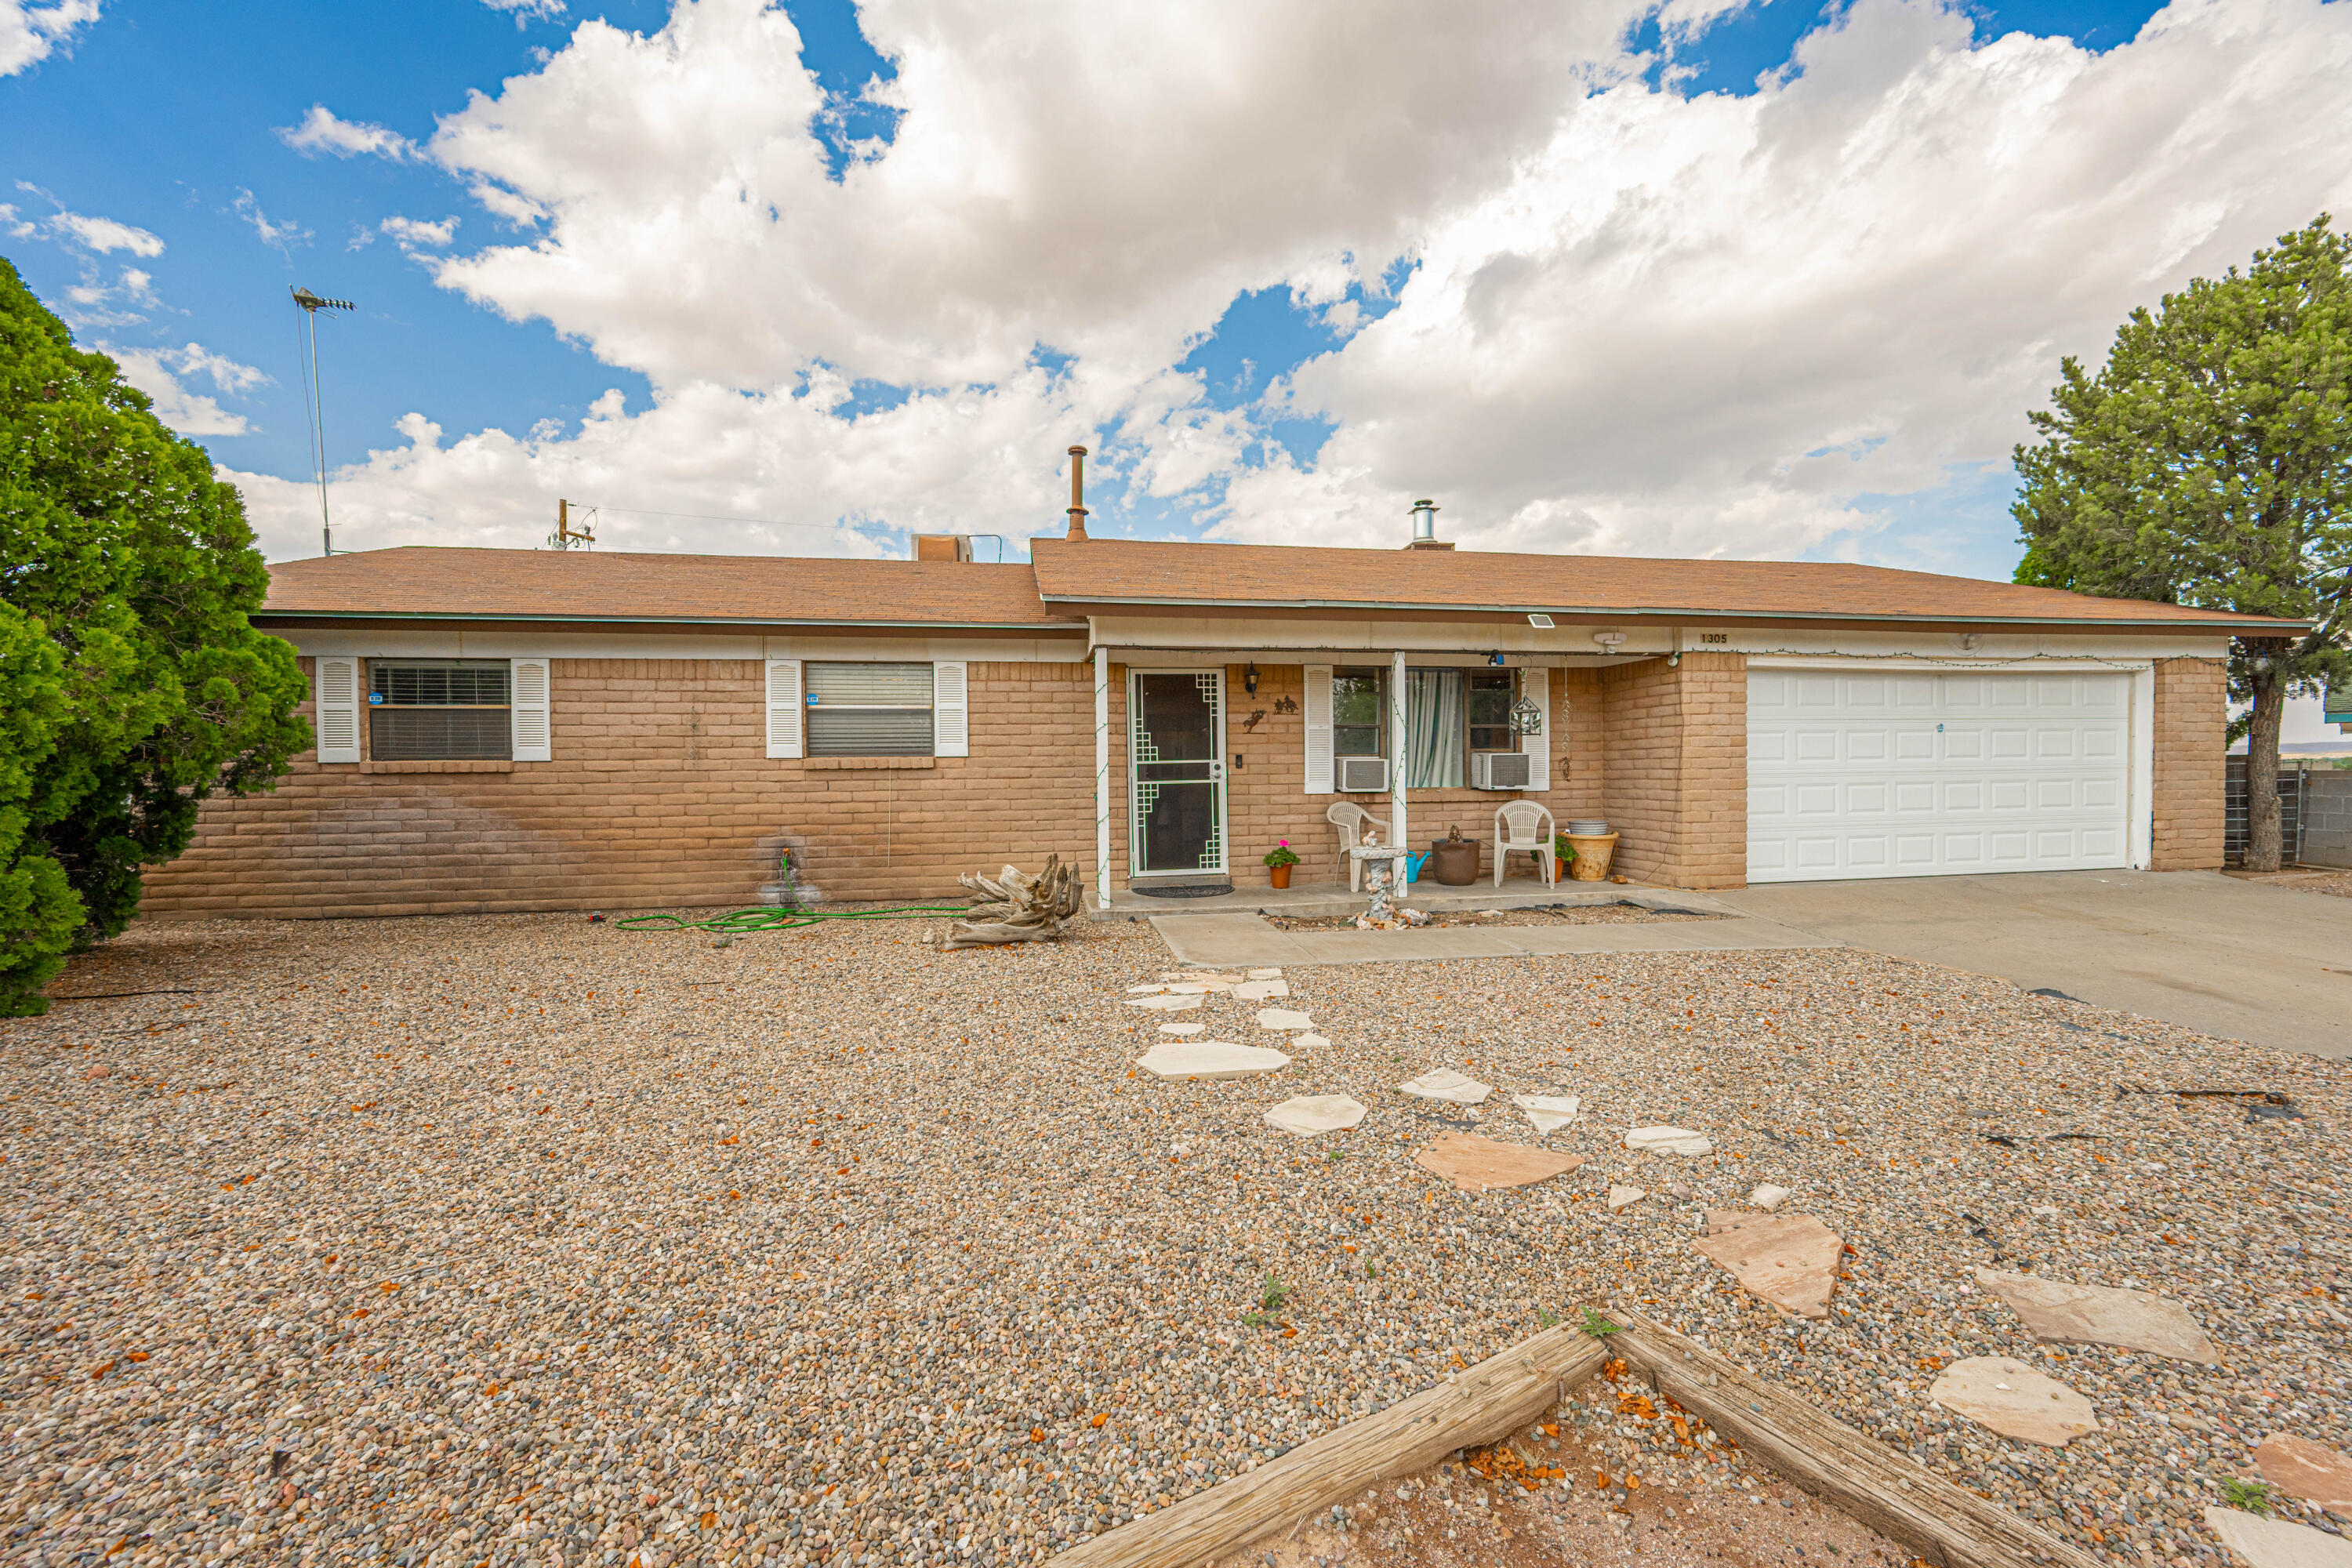 Beautiful brick home in Hilton Hills Subdivision on an established cul-de-sac blocks from NMT, the golf course and NRAO.  Open floor plan with sunsets out the back w/unobstructed views of the mountains!  If you gaze up at night, you'll never stop being amazed to see the Milky Way just overhead. This home features a wood burning fireplace w/cooktop, formal DR, 4 bedrooms w/2 amazing master suites w/updated bathrooms, updated kitchen comes w/stainless-steel appliances, double sink and breakfast bar w/extra lighting.  Laminate wood floors in common areas of the home and carpet in the bedrooms. The backyard is spacious w/covered back patio, extra concrete slabs, mature fruit trees, several storage options and backyard access.  Plenty of room for your toys! This beautiful home is ready for you!